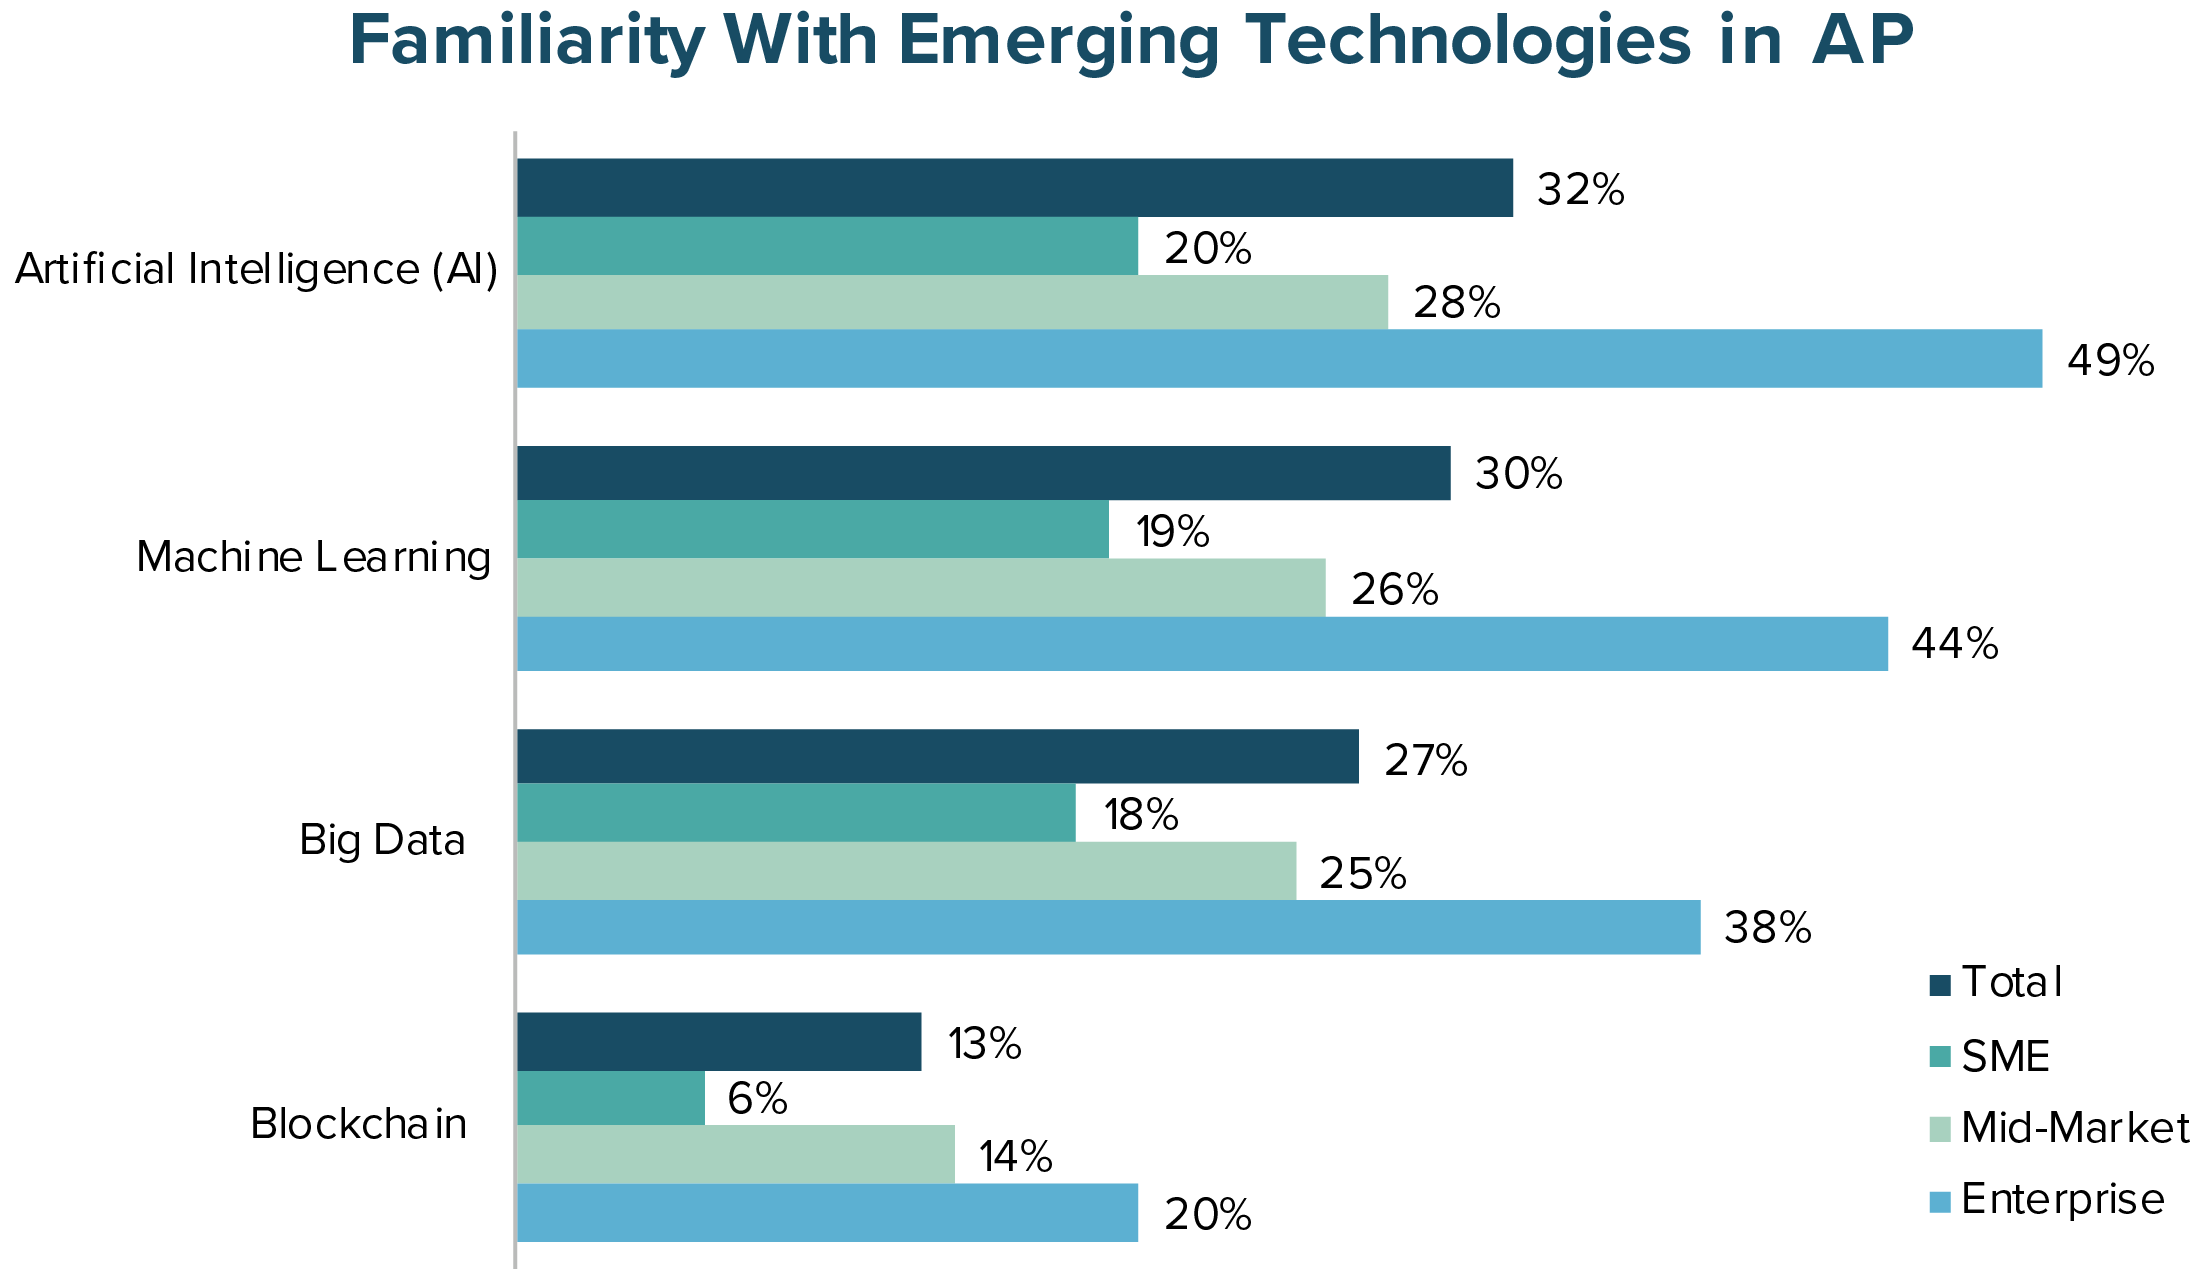 Familiarity with Emerging Technologies in AP